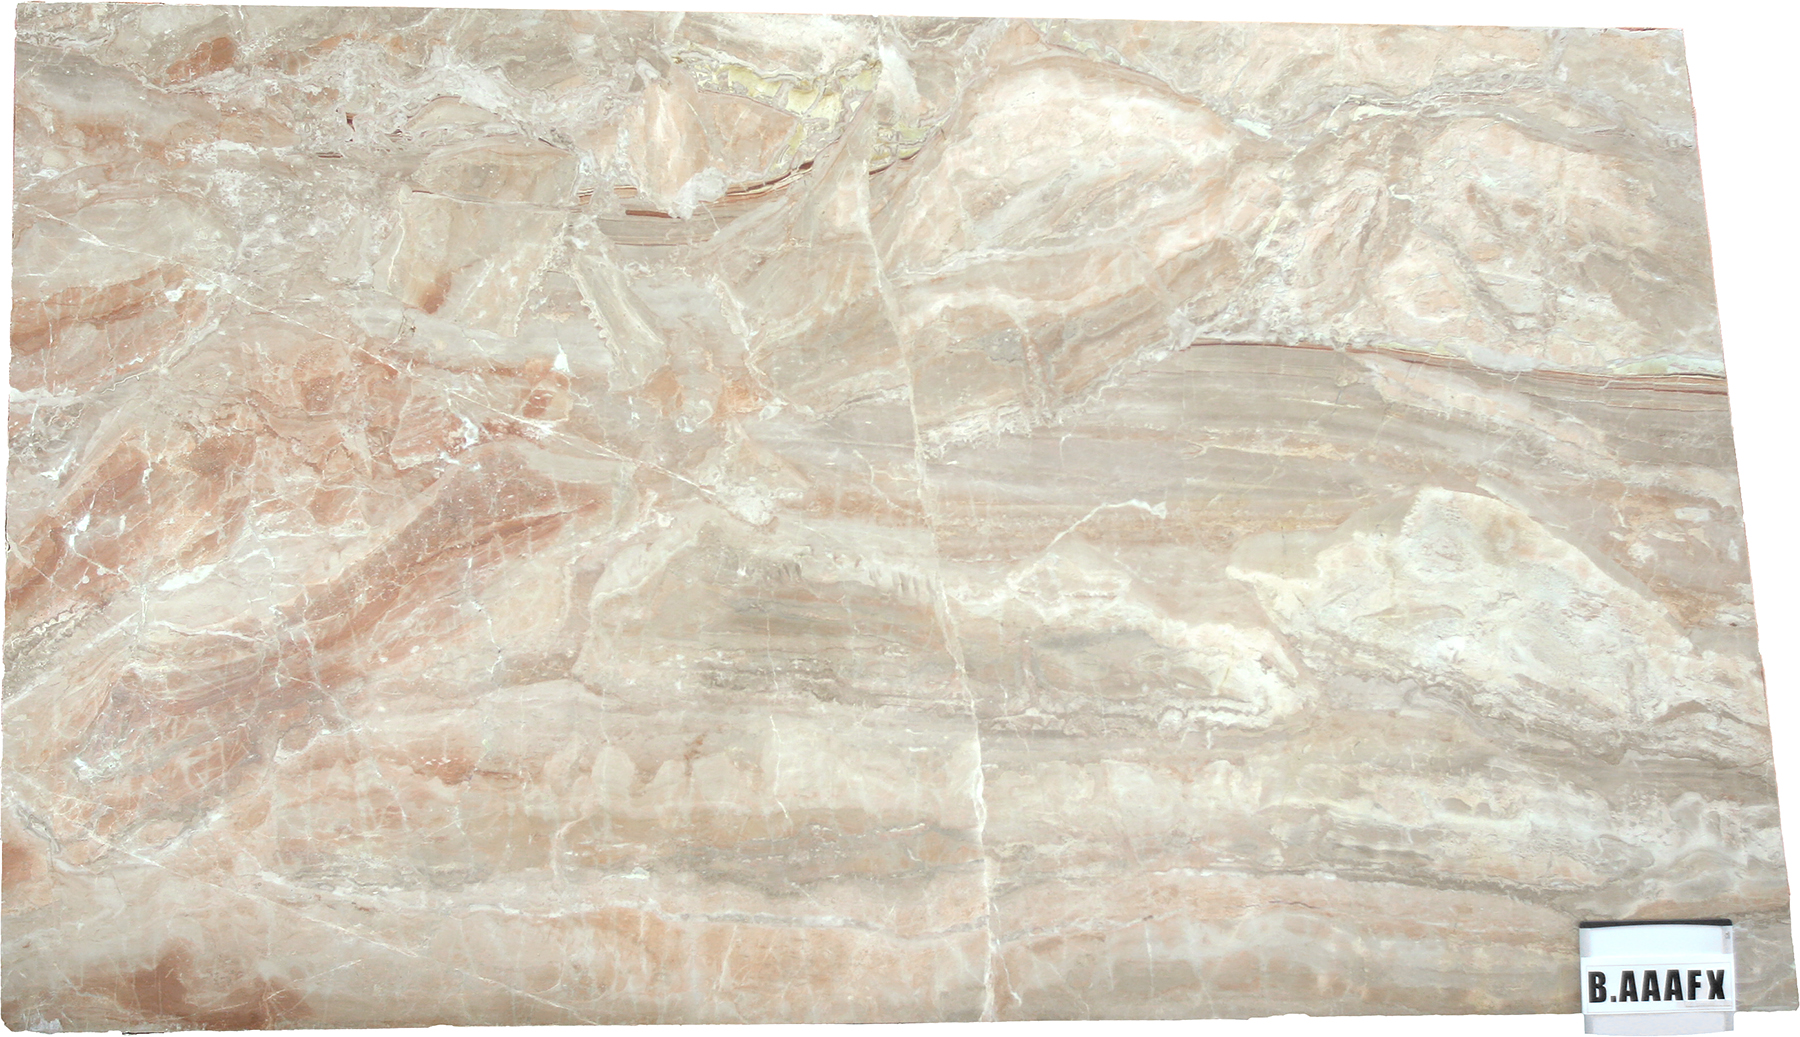 Breccia Oniciata Polished